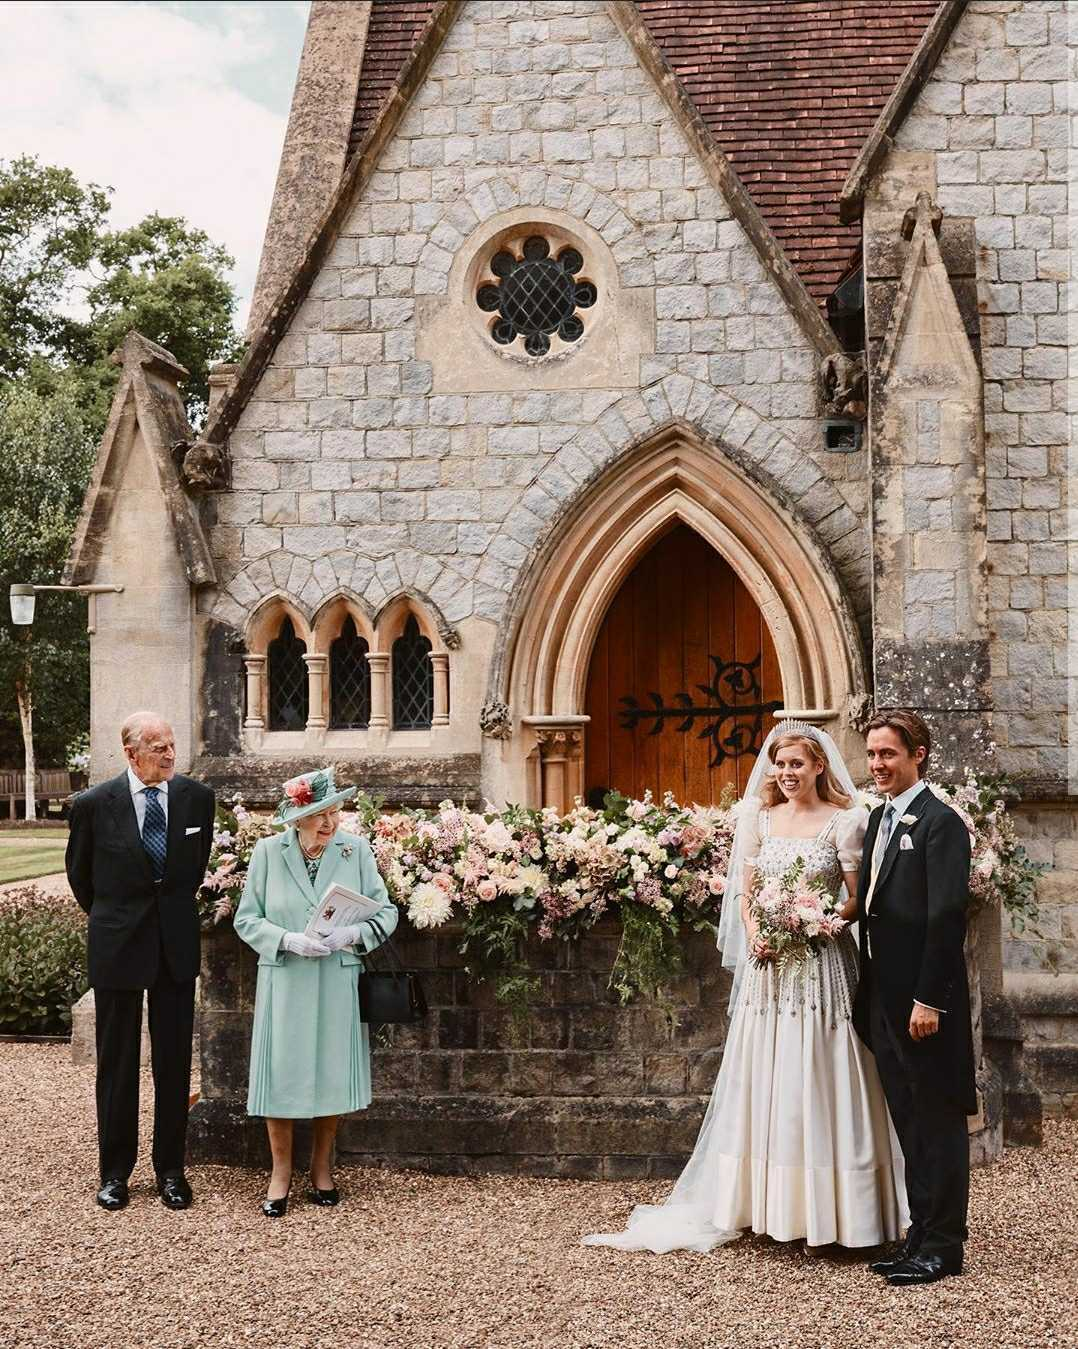 princess beatrice and edoardo mapelli mozzi wedding day portrait with queen elizabeth and prince philip